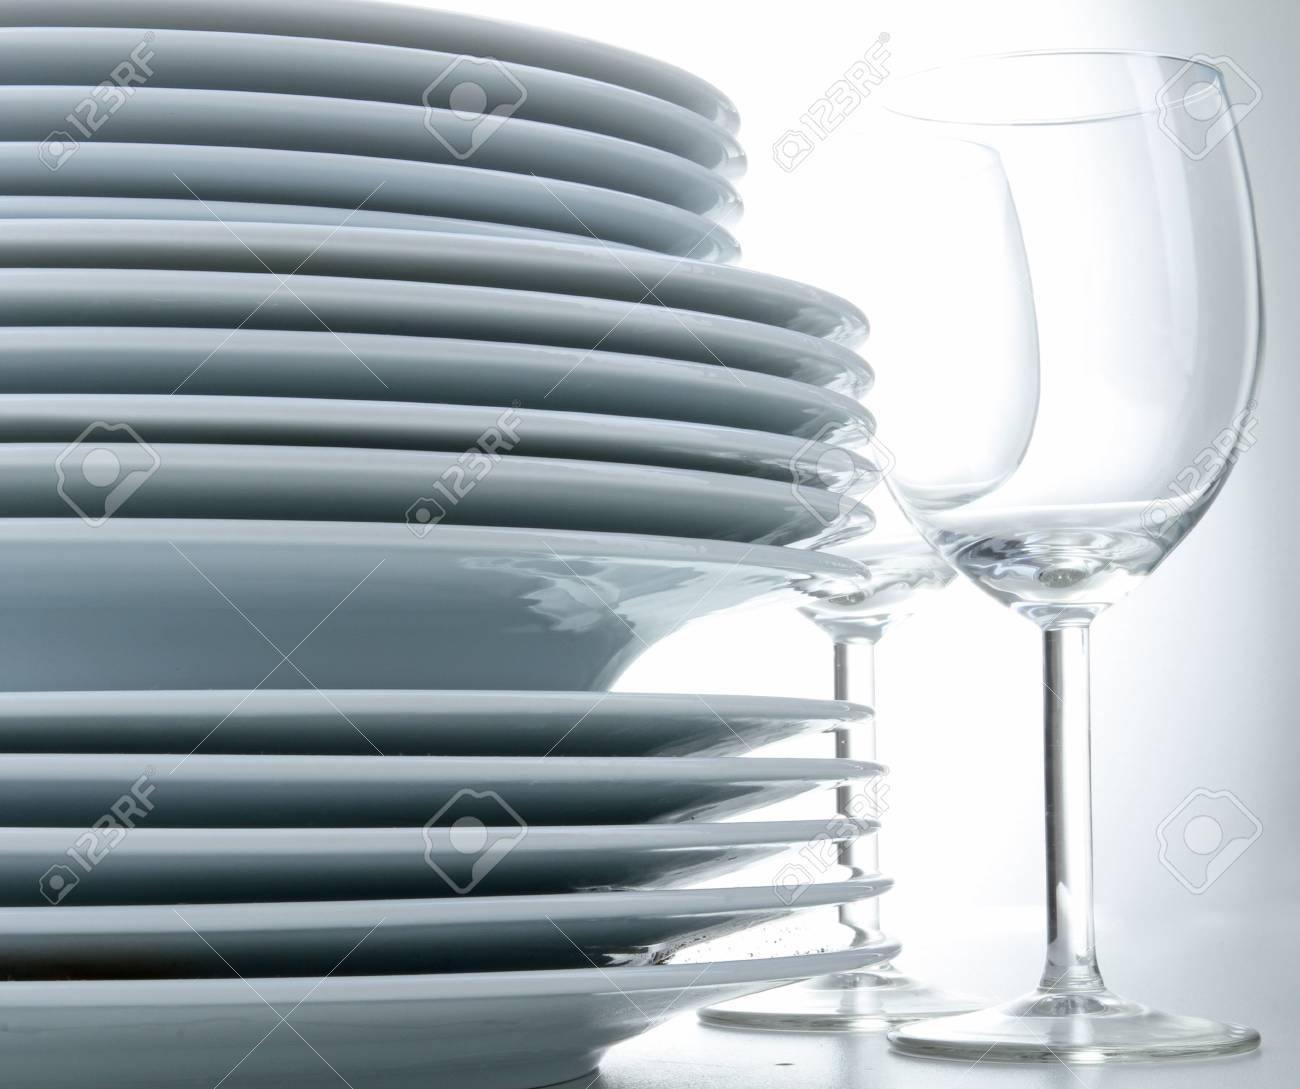 plates and glasses Stock Photo - 7832444